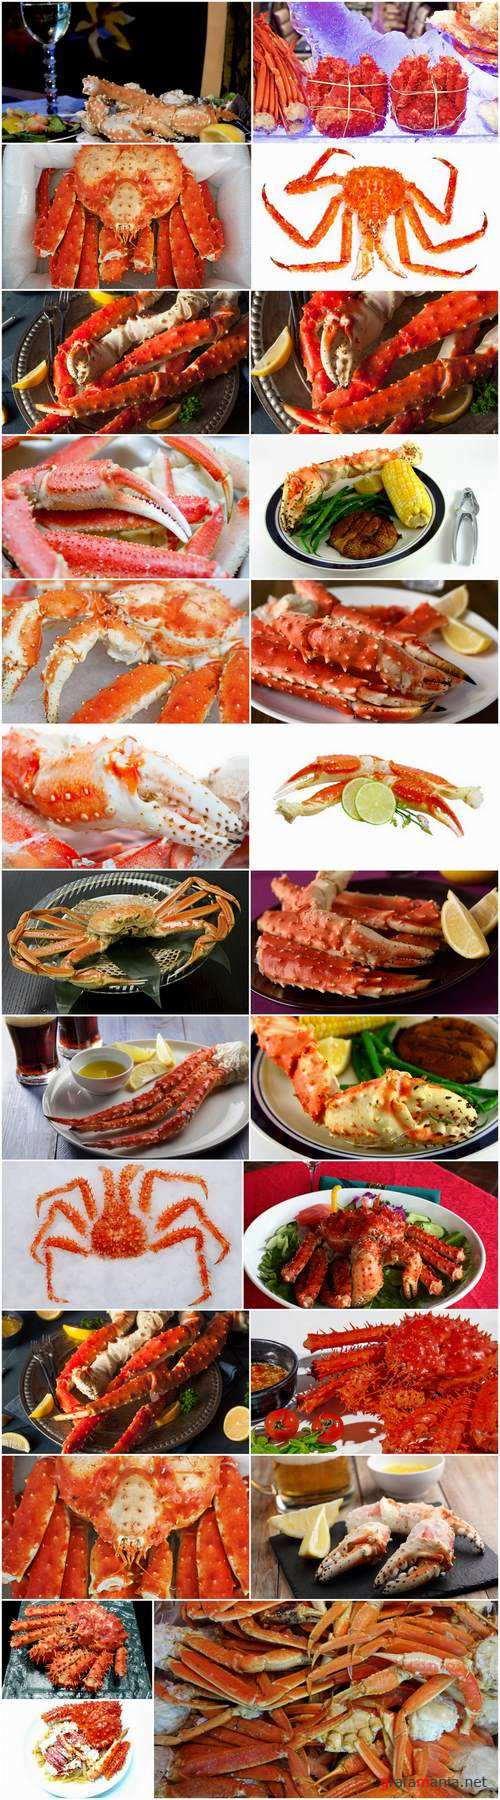 King crab claw seafood delicacy 25 HQ Jpeg